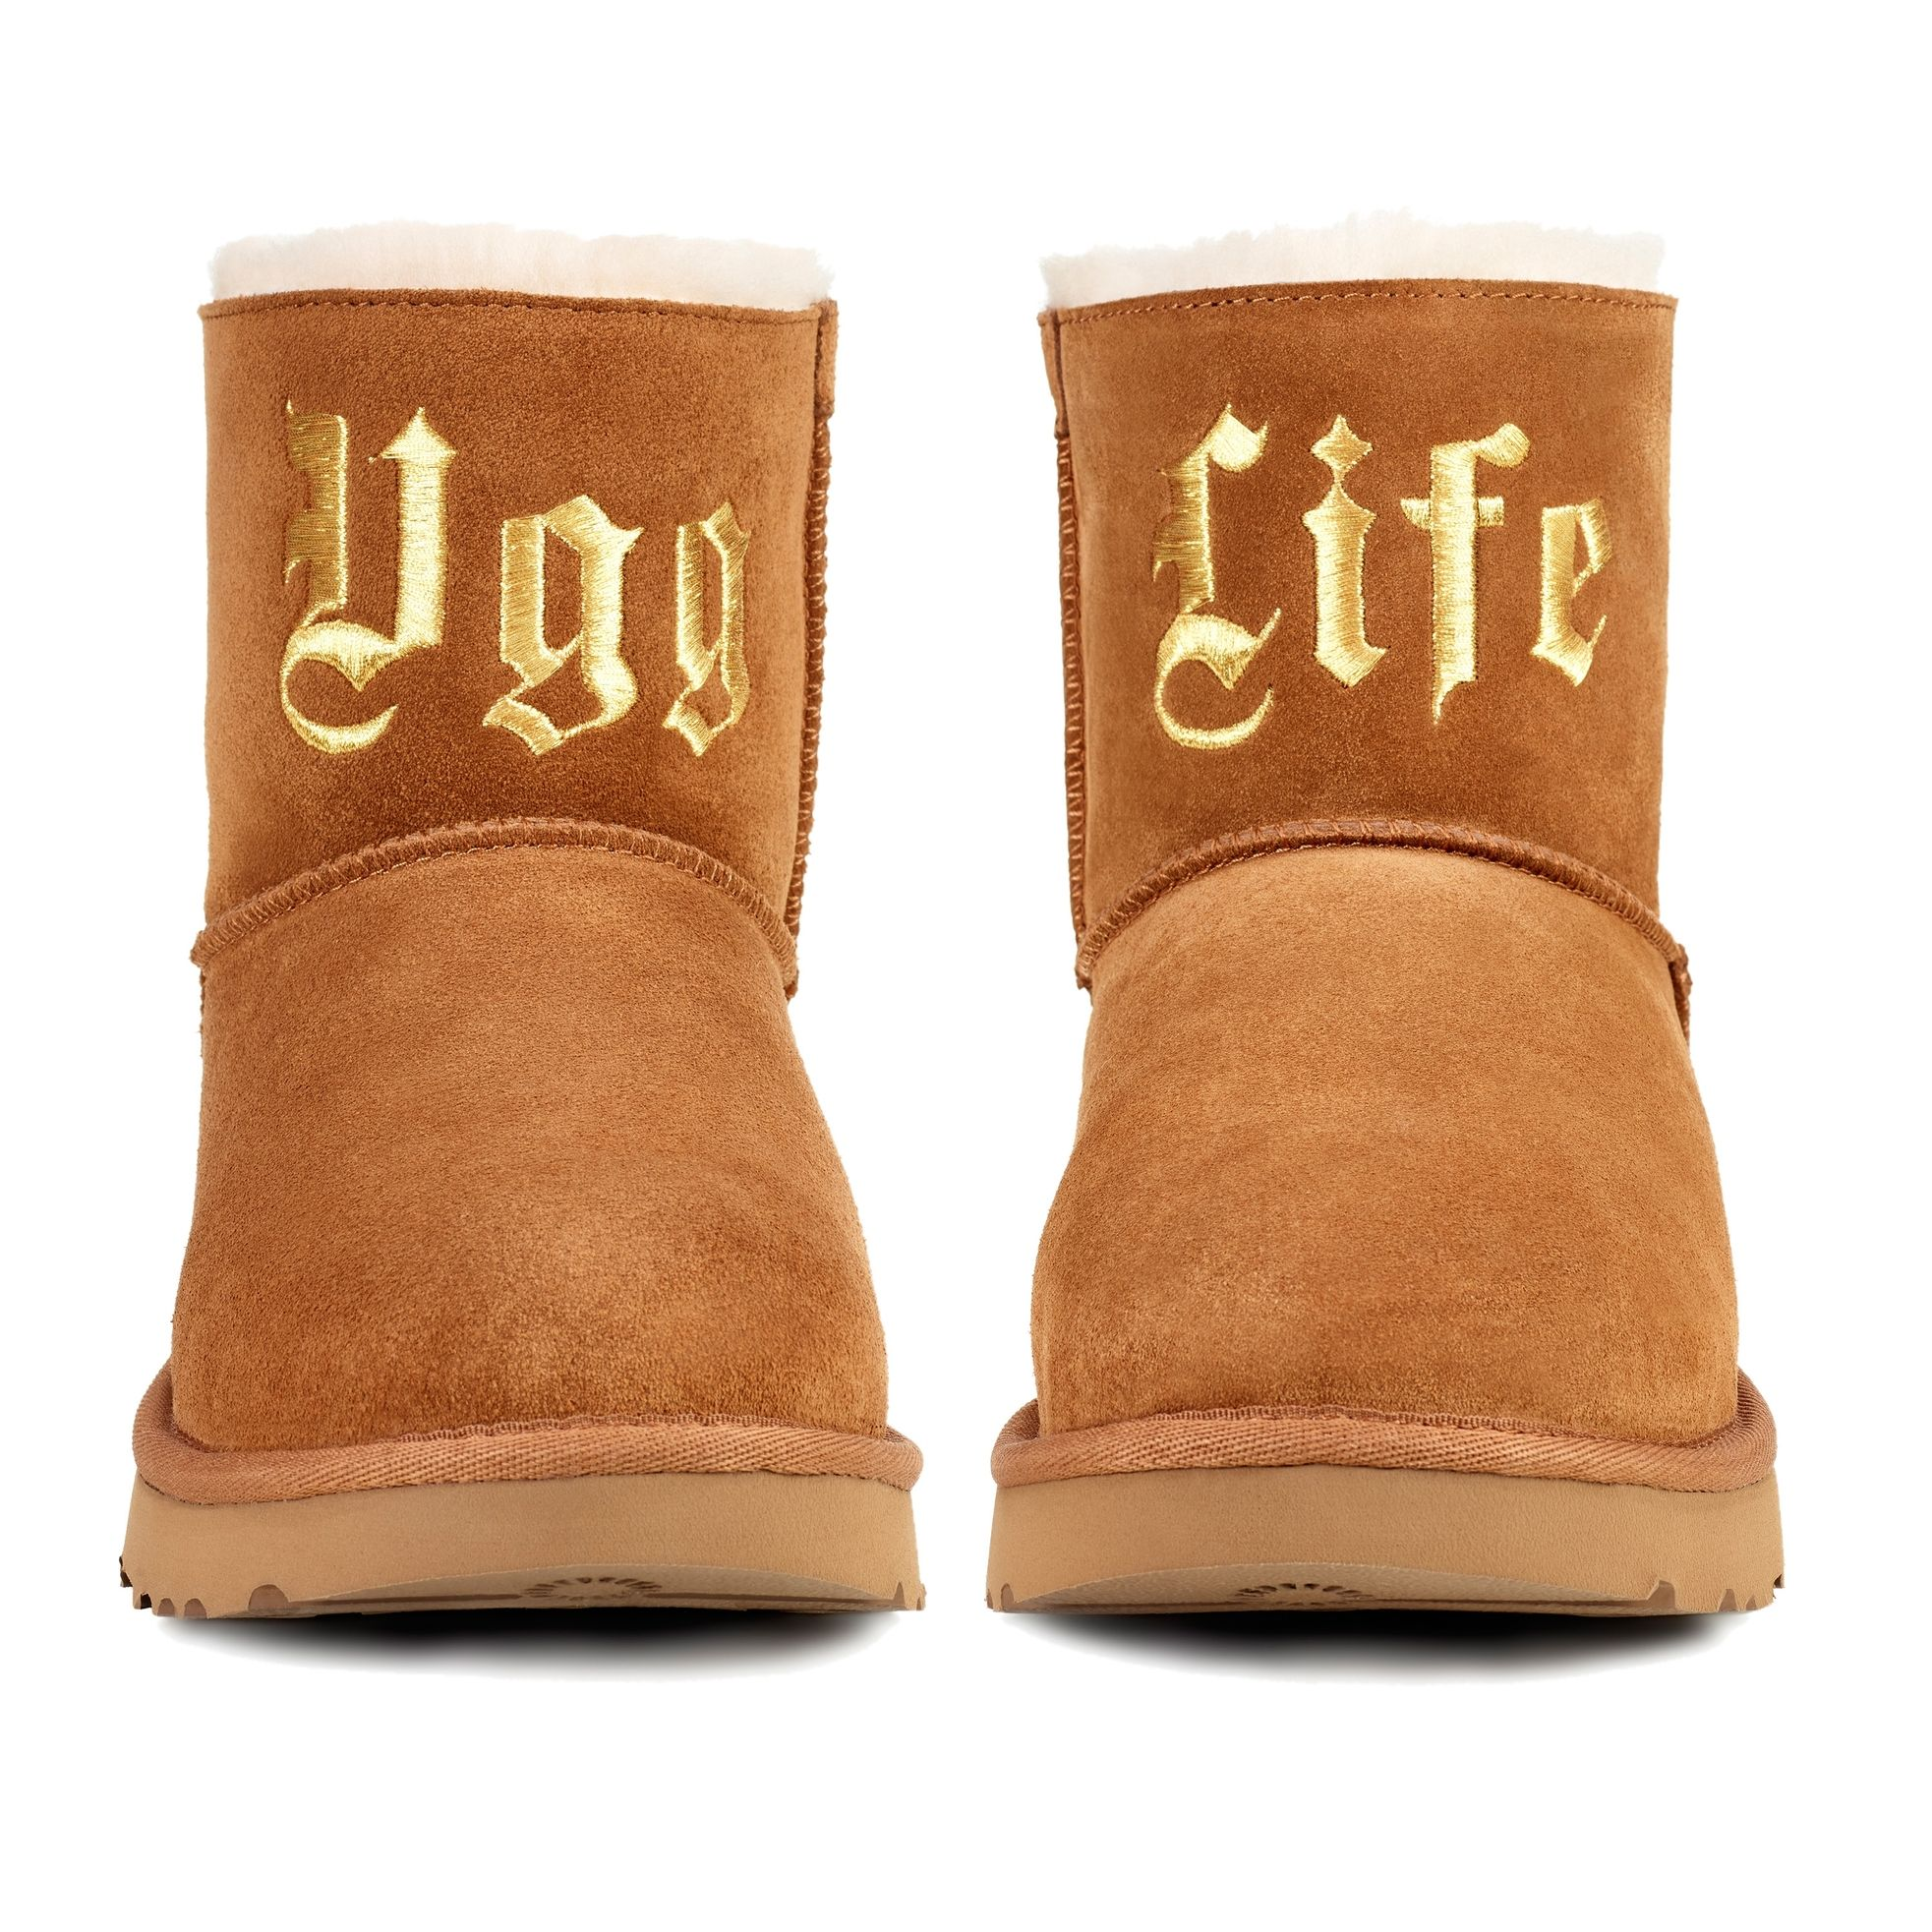 COURTESY OF UGG BOOTS